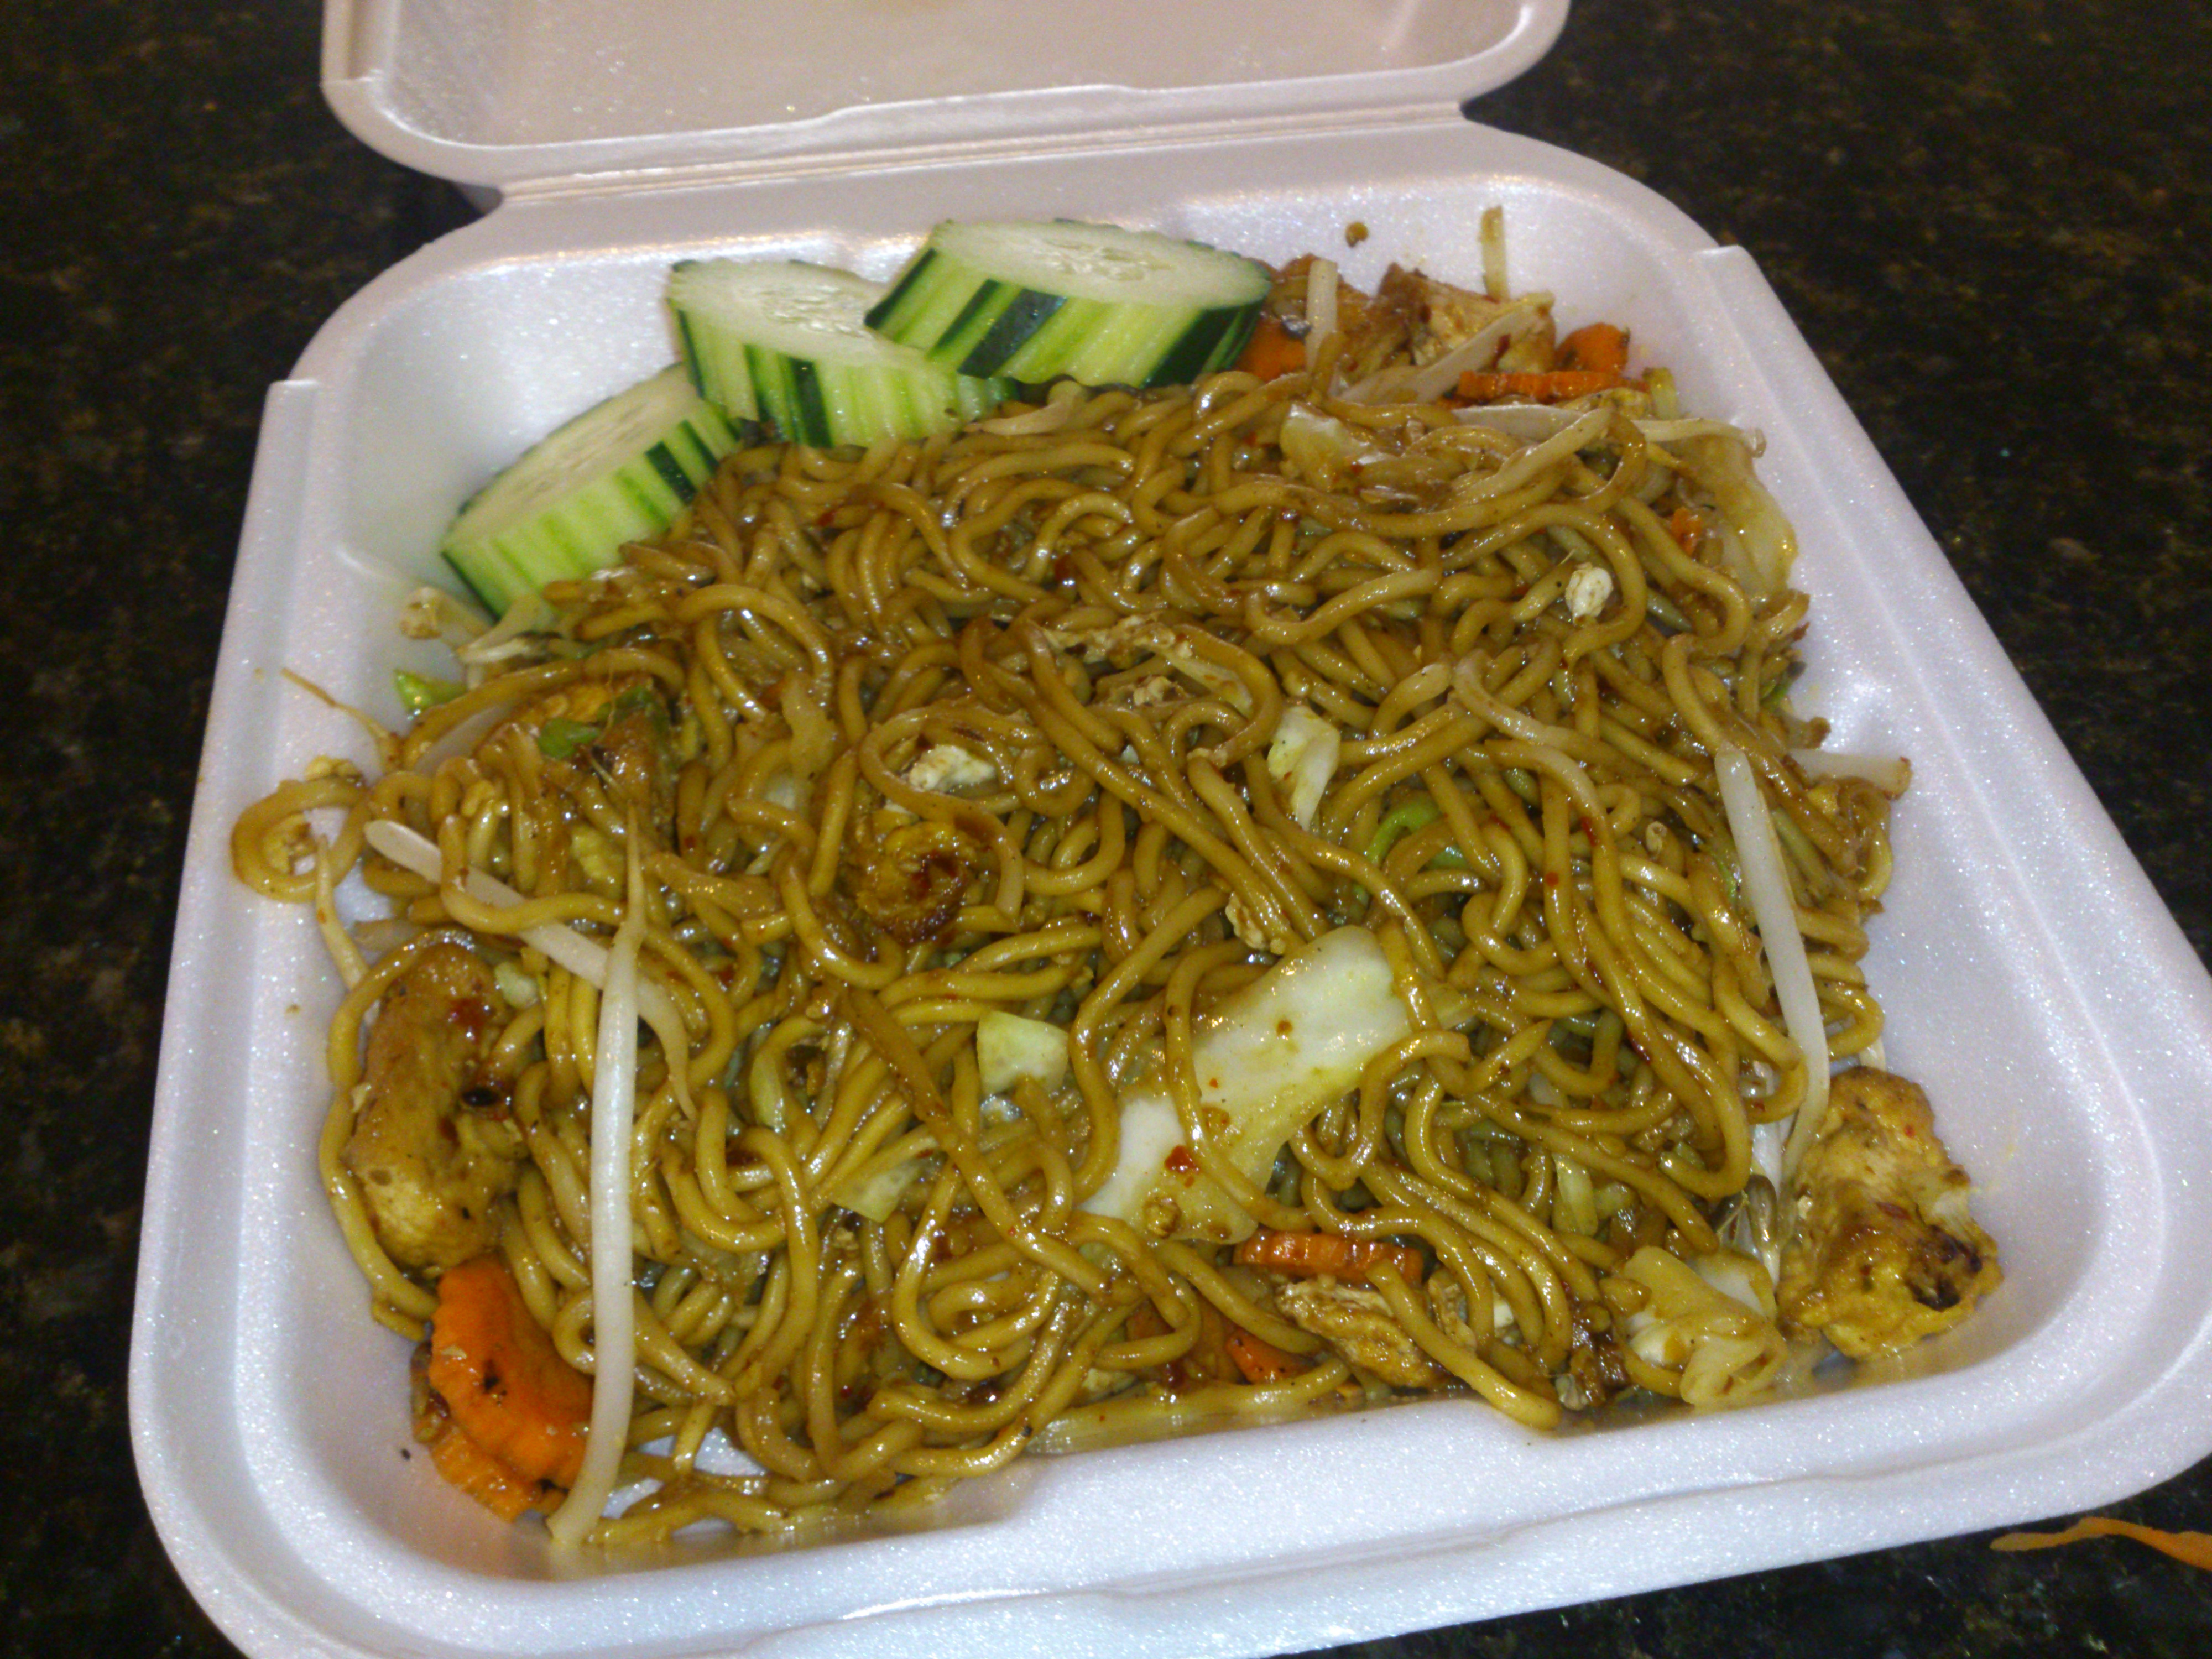 Stir Fried Noodles With Bean Sprouts Egg Noodles Stir Fried